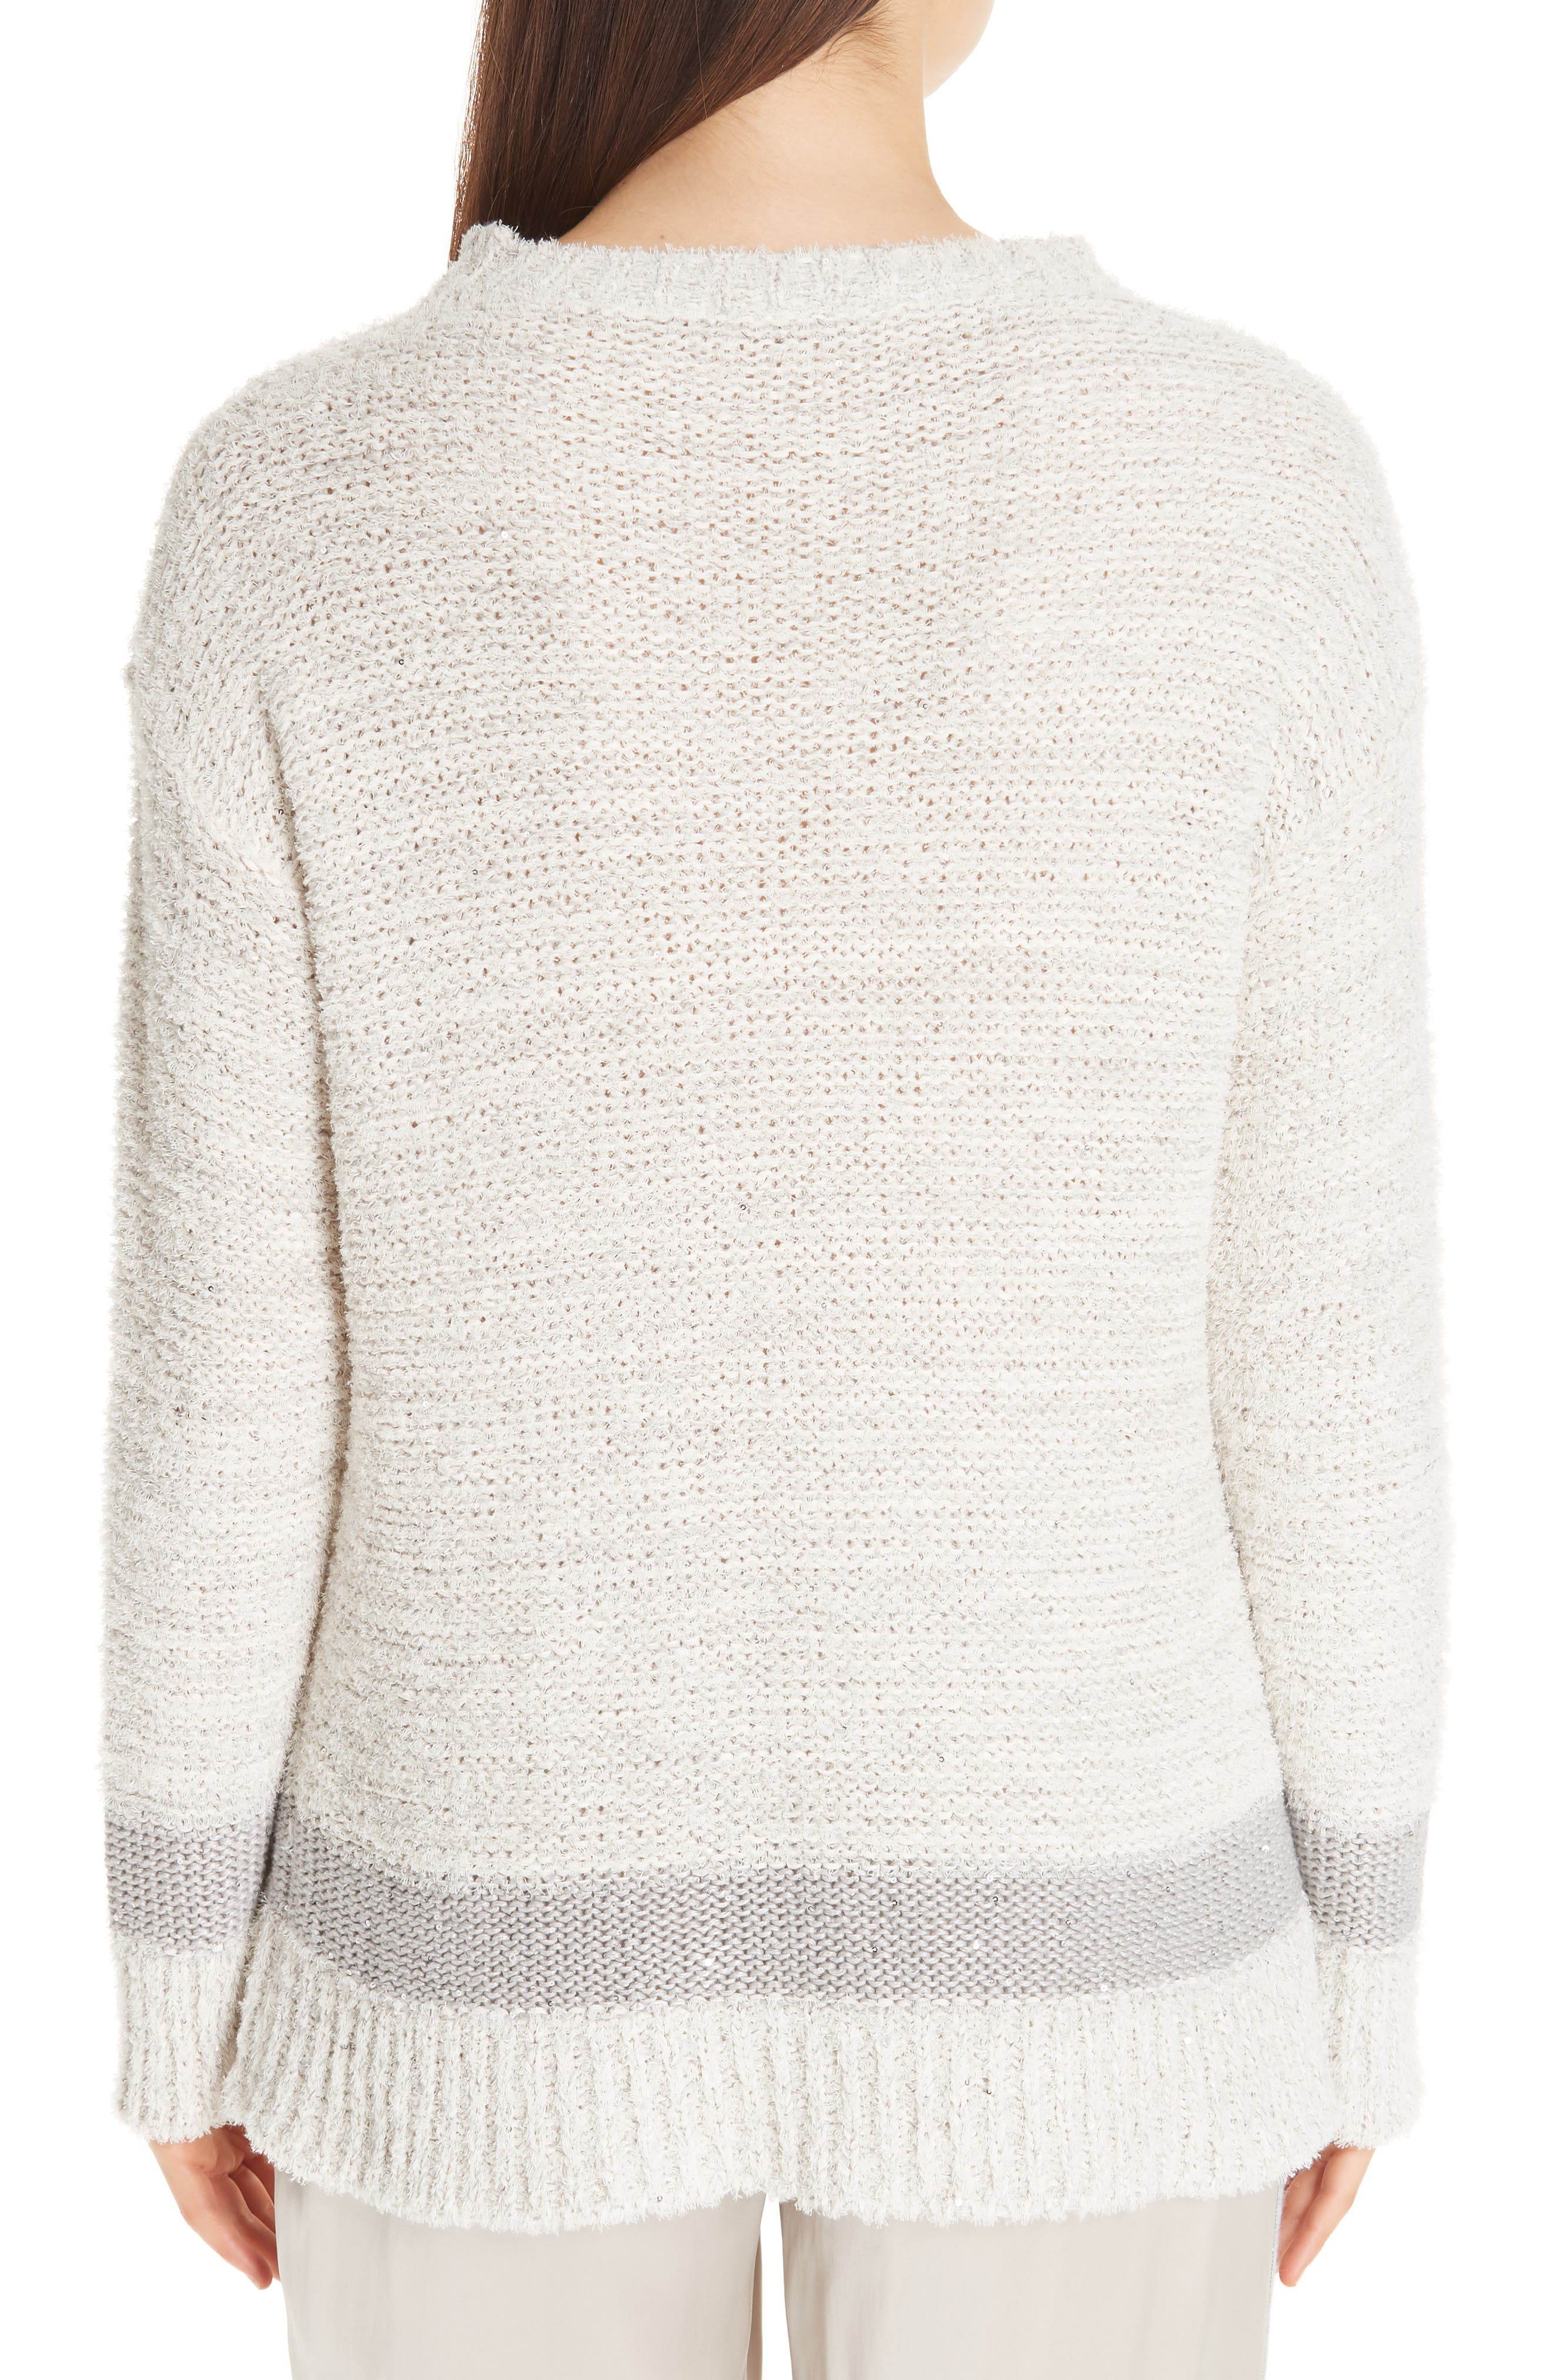 Sequin Knit Sweater,                             Main thumbnail 1, color,                             BEIGE